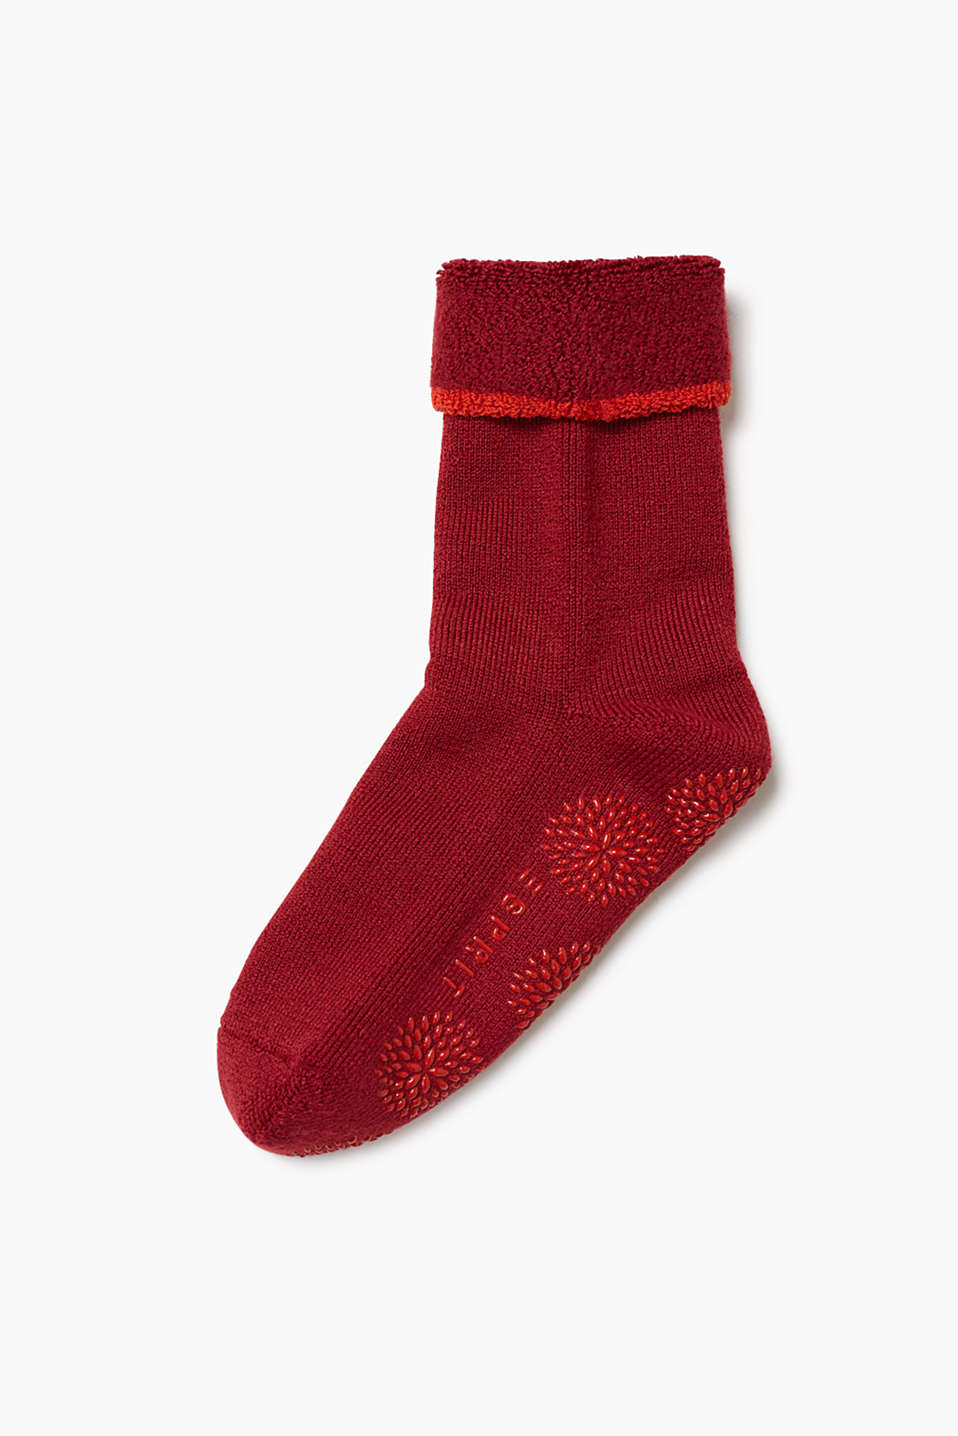 Esprit - Terry cloth socks with stoppers